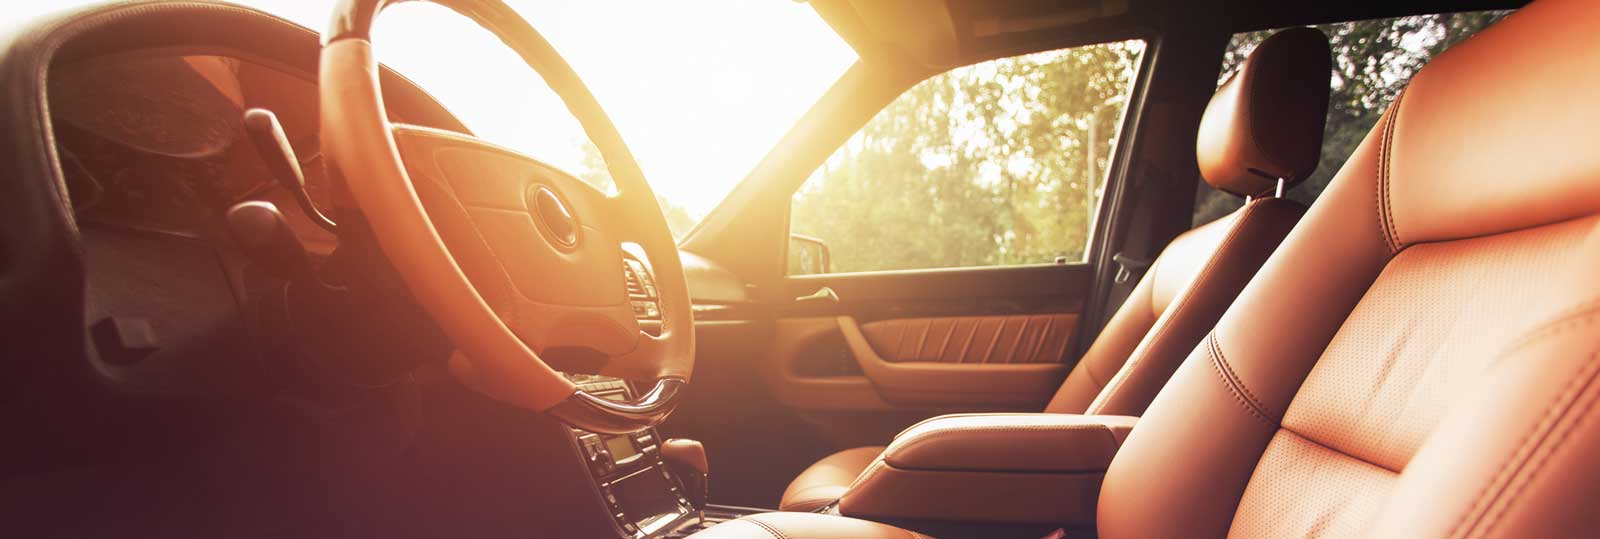 hight resolution of beautiful car interior warming in the sunset